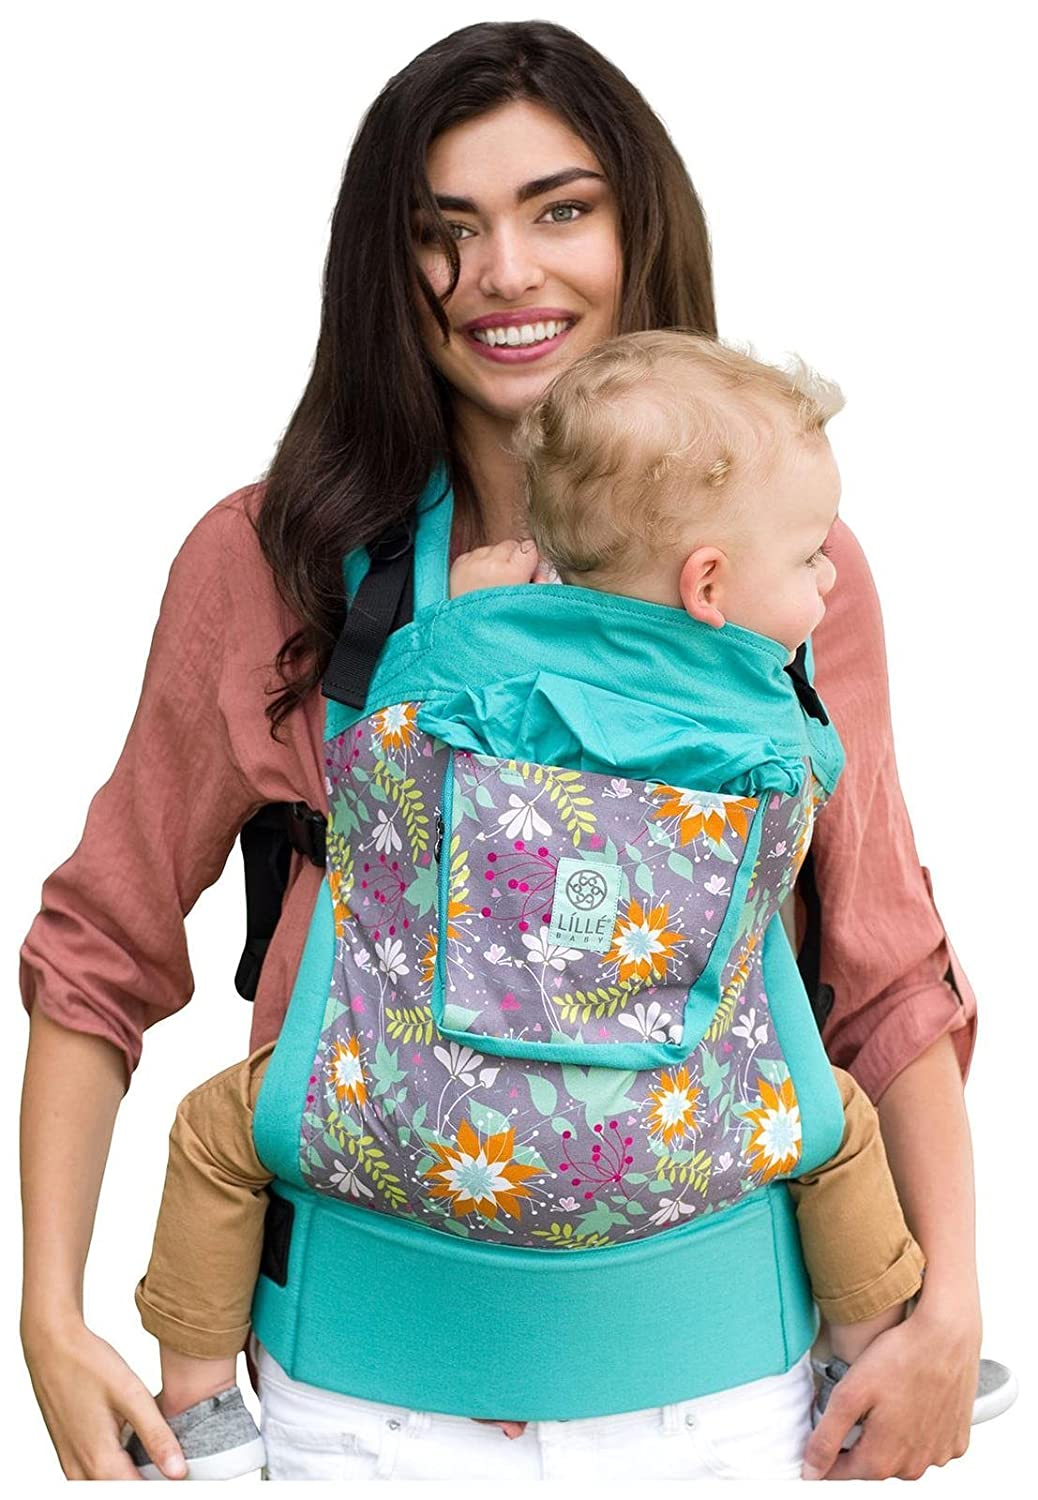 92f6fccb3bf Amazon.com   4 in 1 ESSENTIALS Baby Carrier by LILLEbaby - Lily Pond   Baby